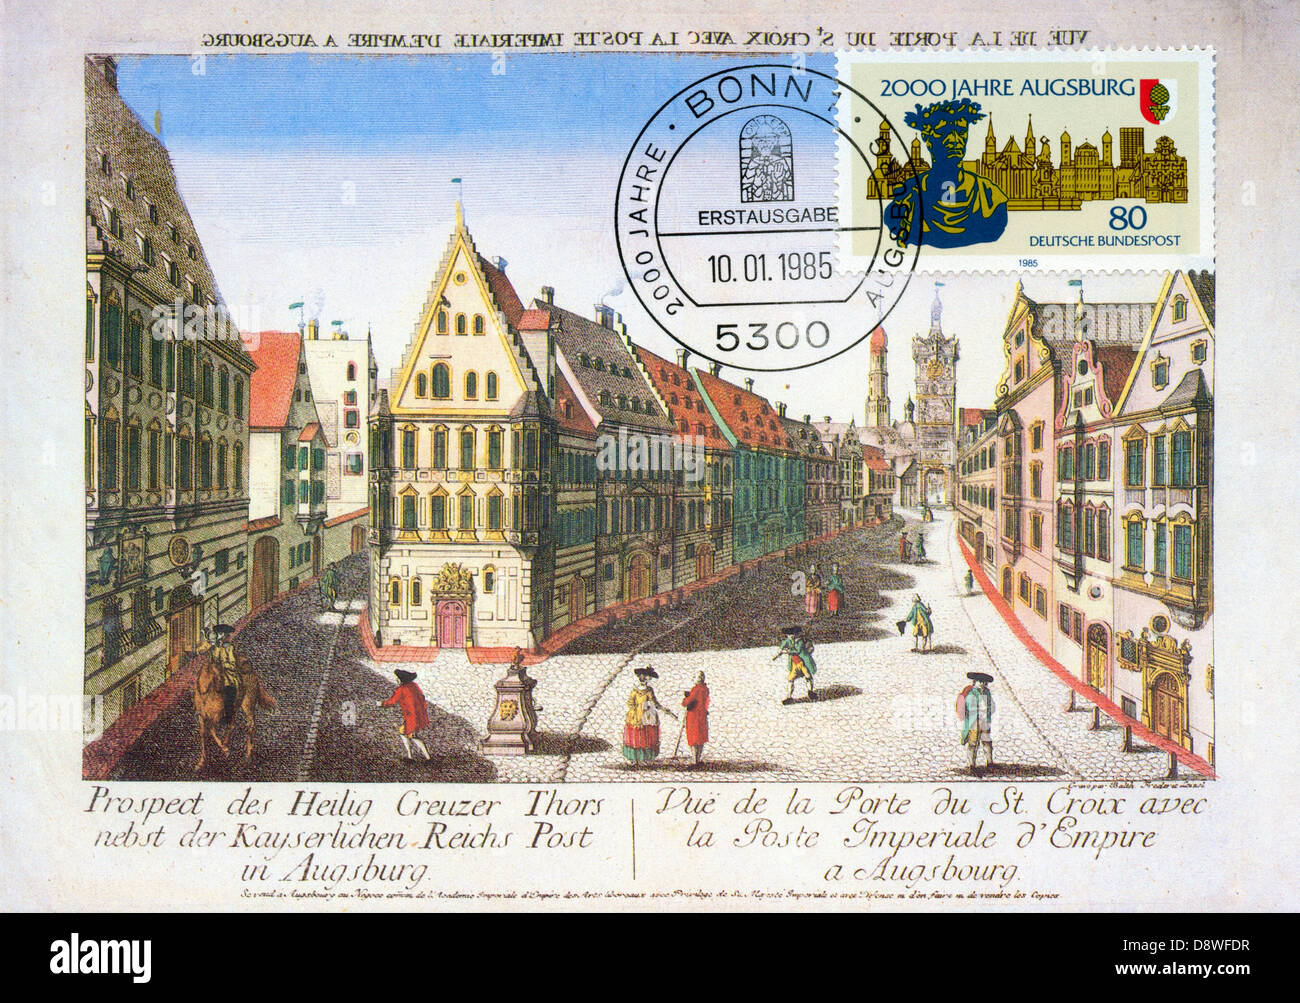 German maxicard (card maximum) and postage stamp - 2,000 years of Augsburg - Stock Image